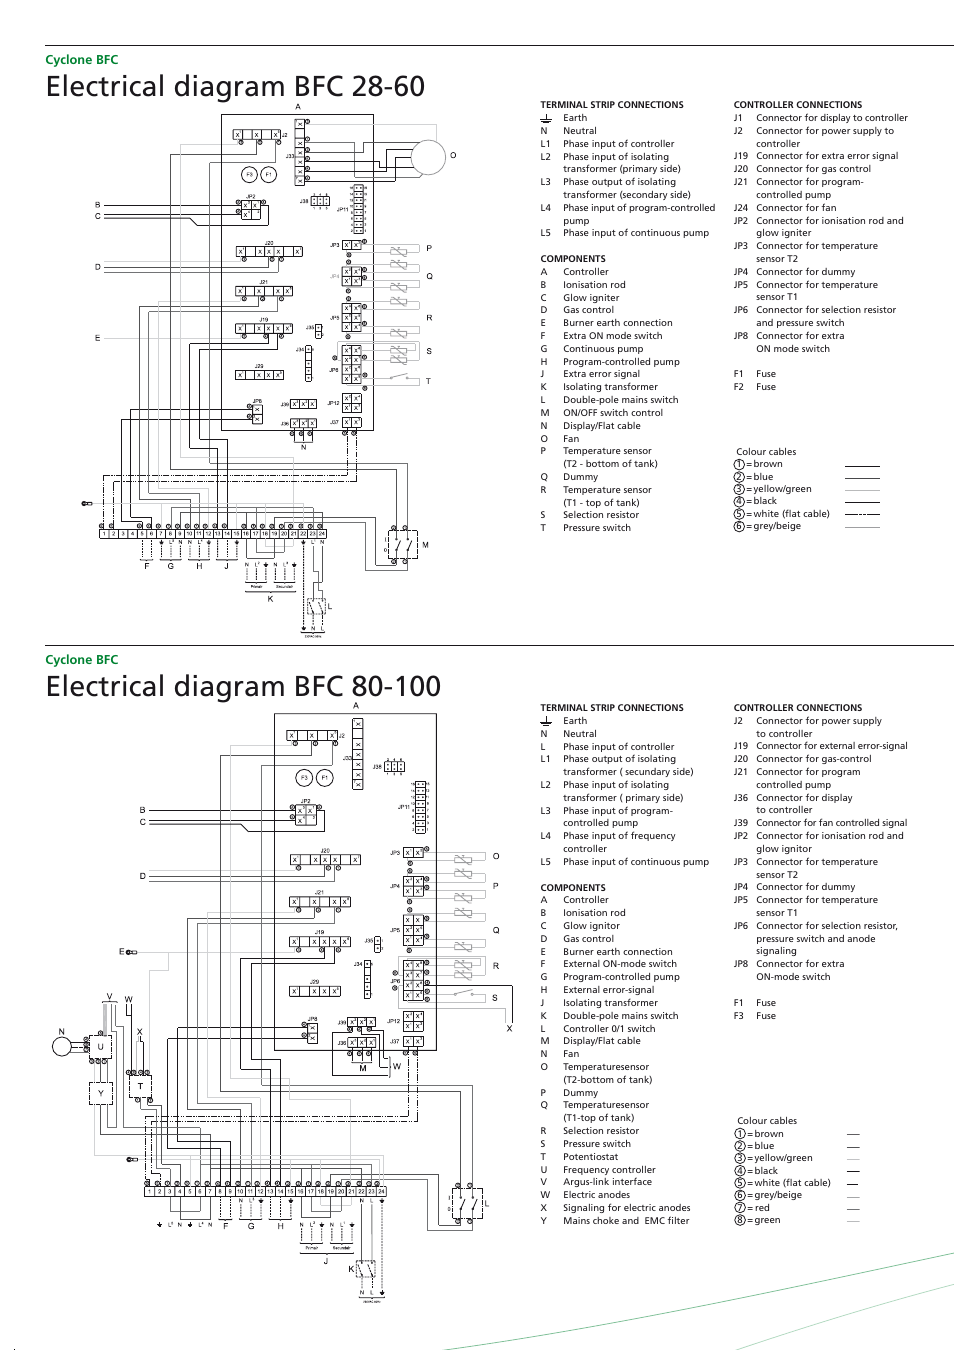 medium resolution of electrical diagram bfc 28 60 a o smith bfc 50 user manual page